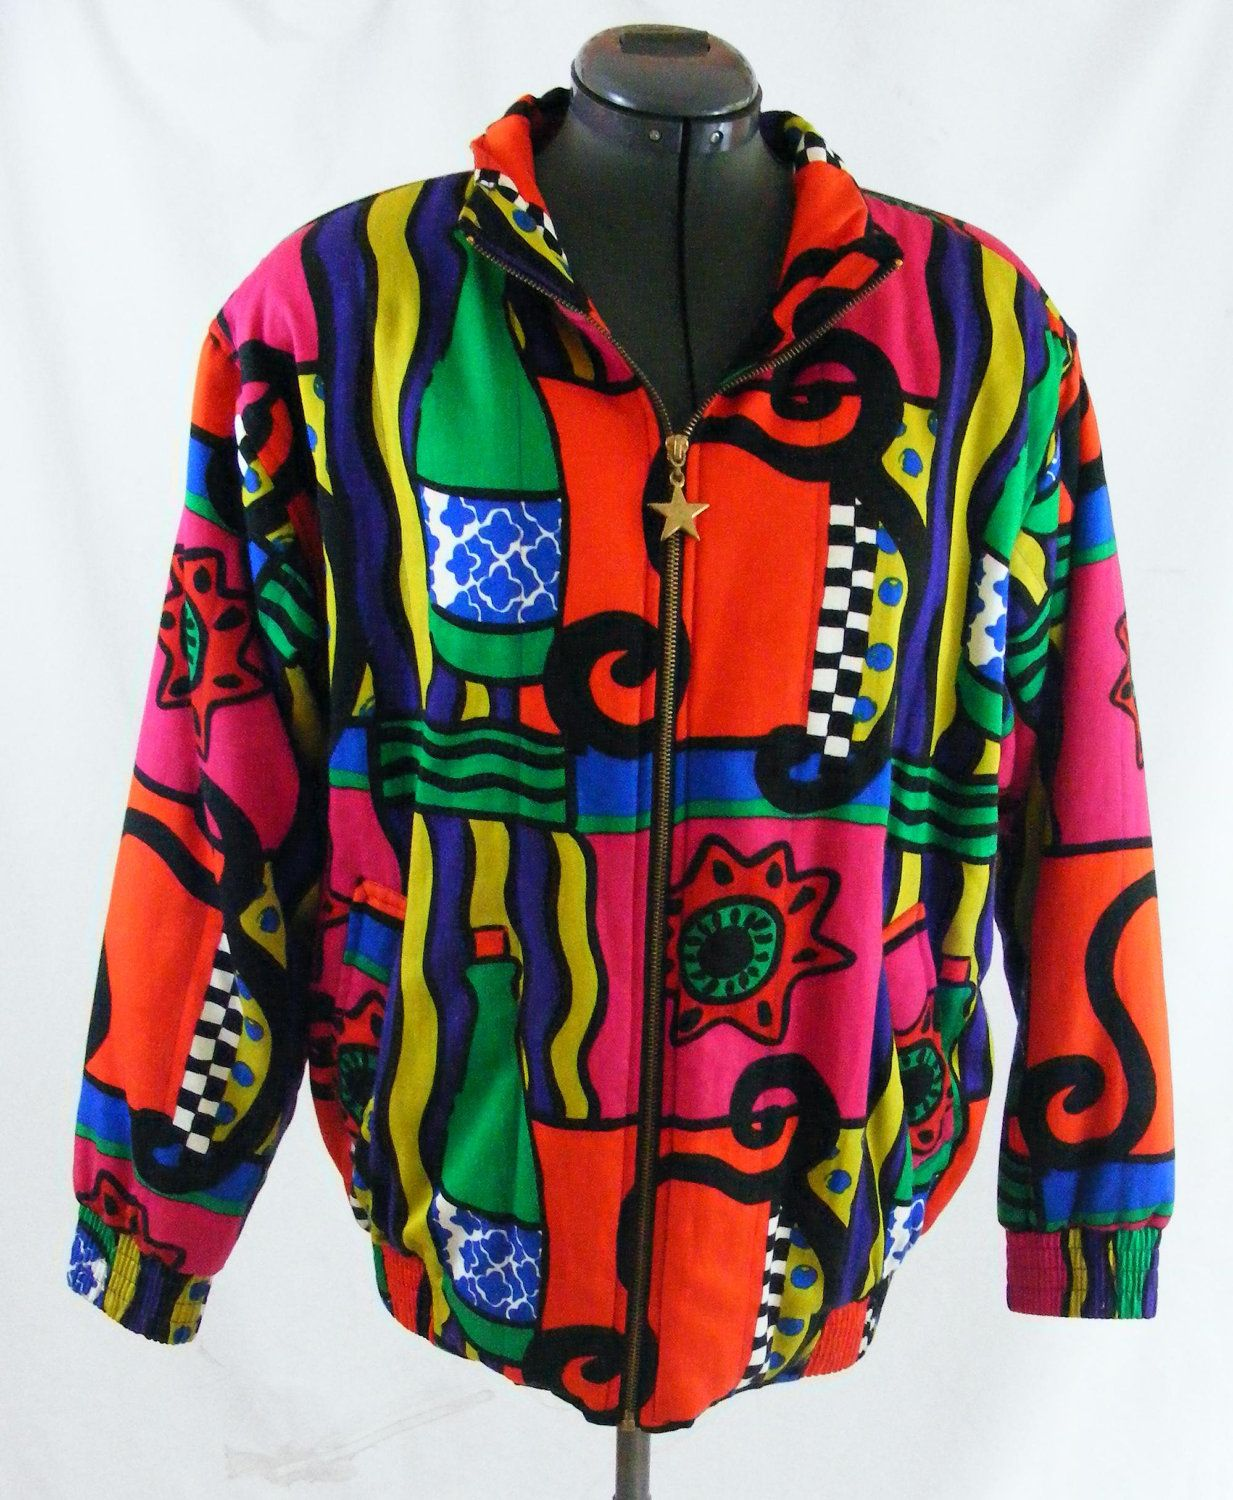 Vintage 80s Graffiti Colorful Rainbow Zip Front Bomber Jacket Coat L mZ0nMjGIH